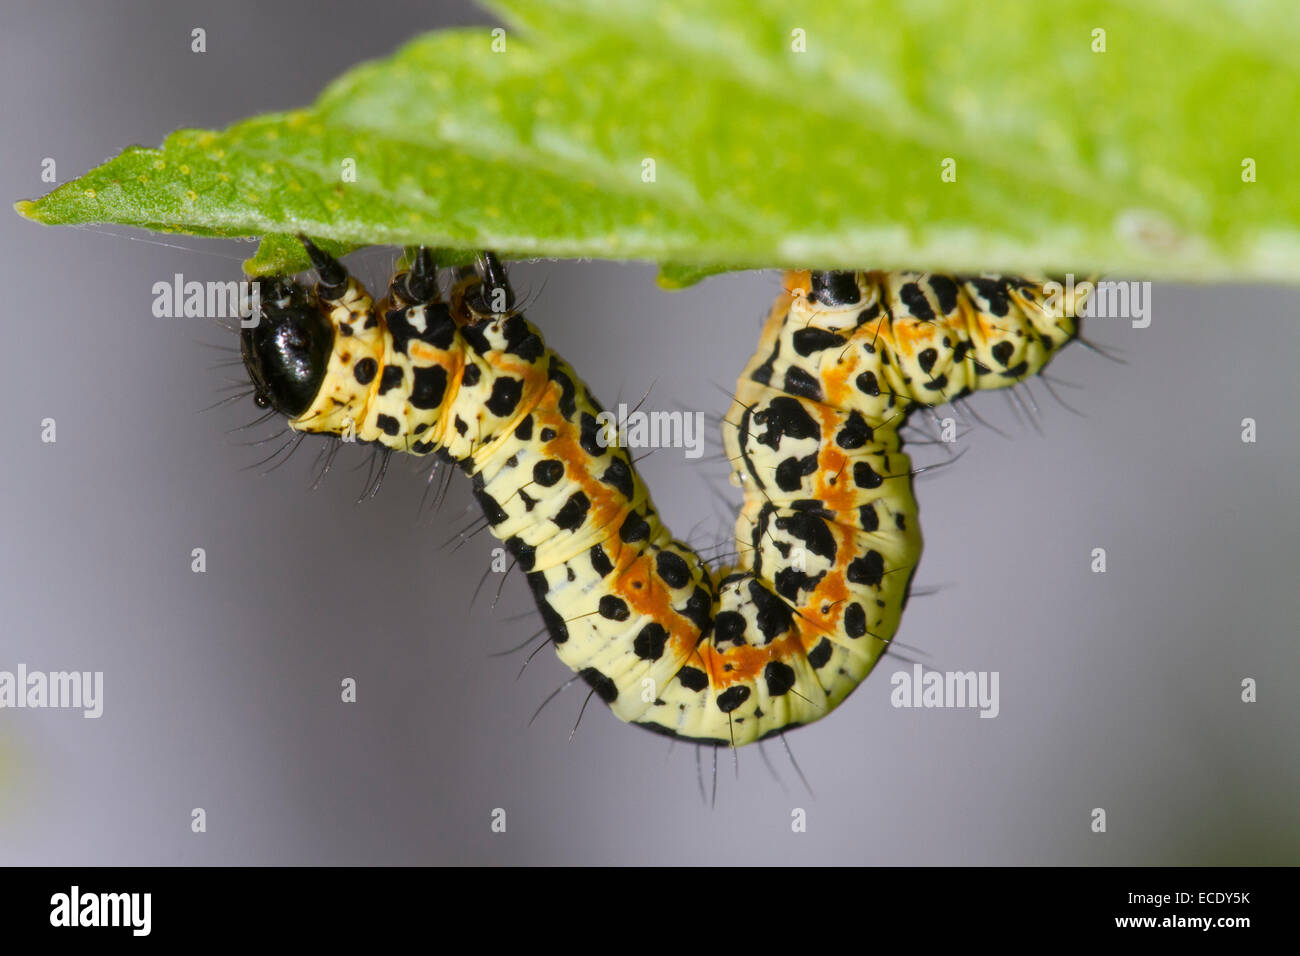 Magpie moth (Abraxas grossulariata) larva on a Blackcurrent leaf. Powys, Wales. May. - Stock Image